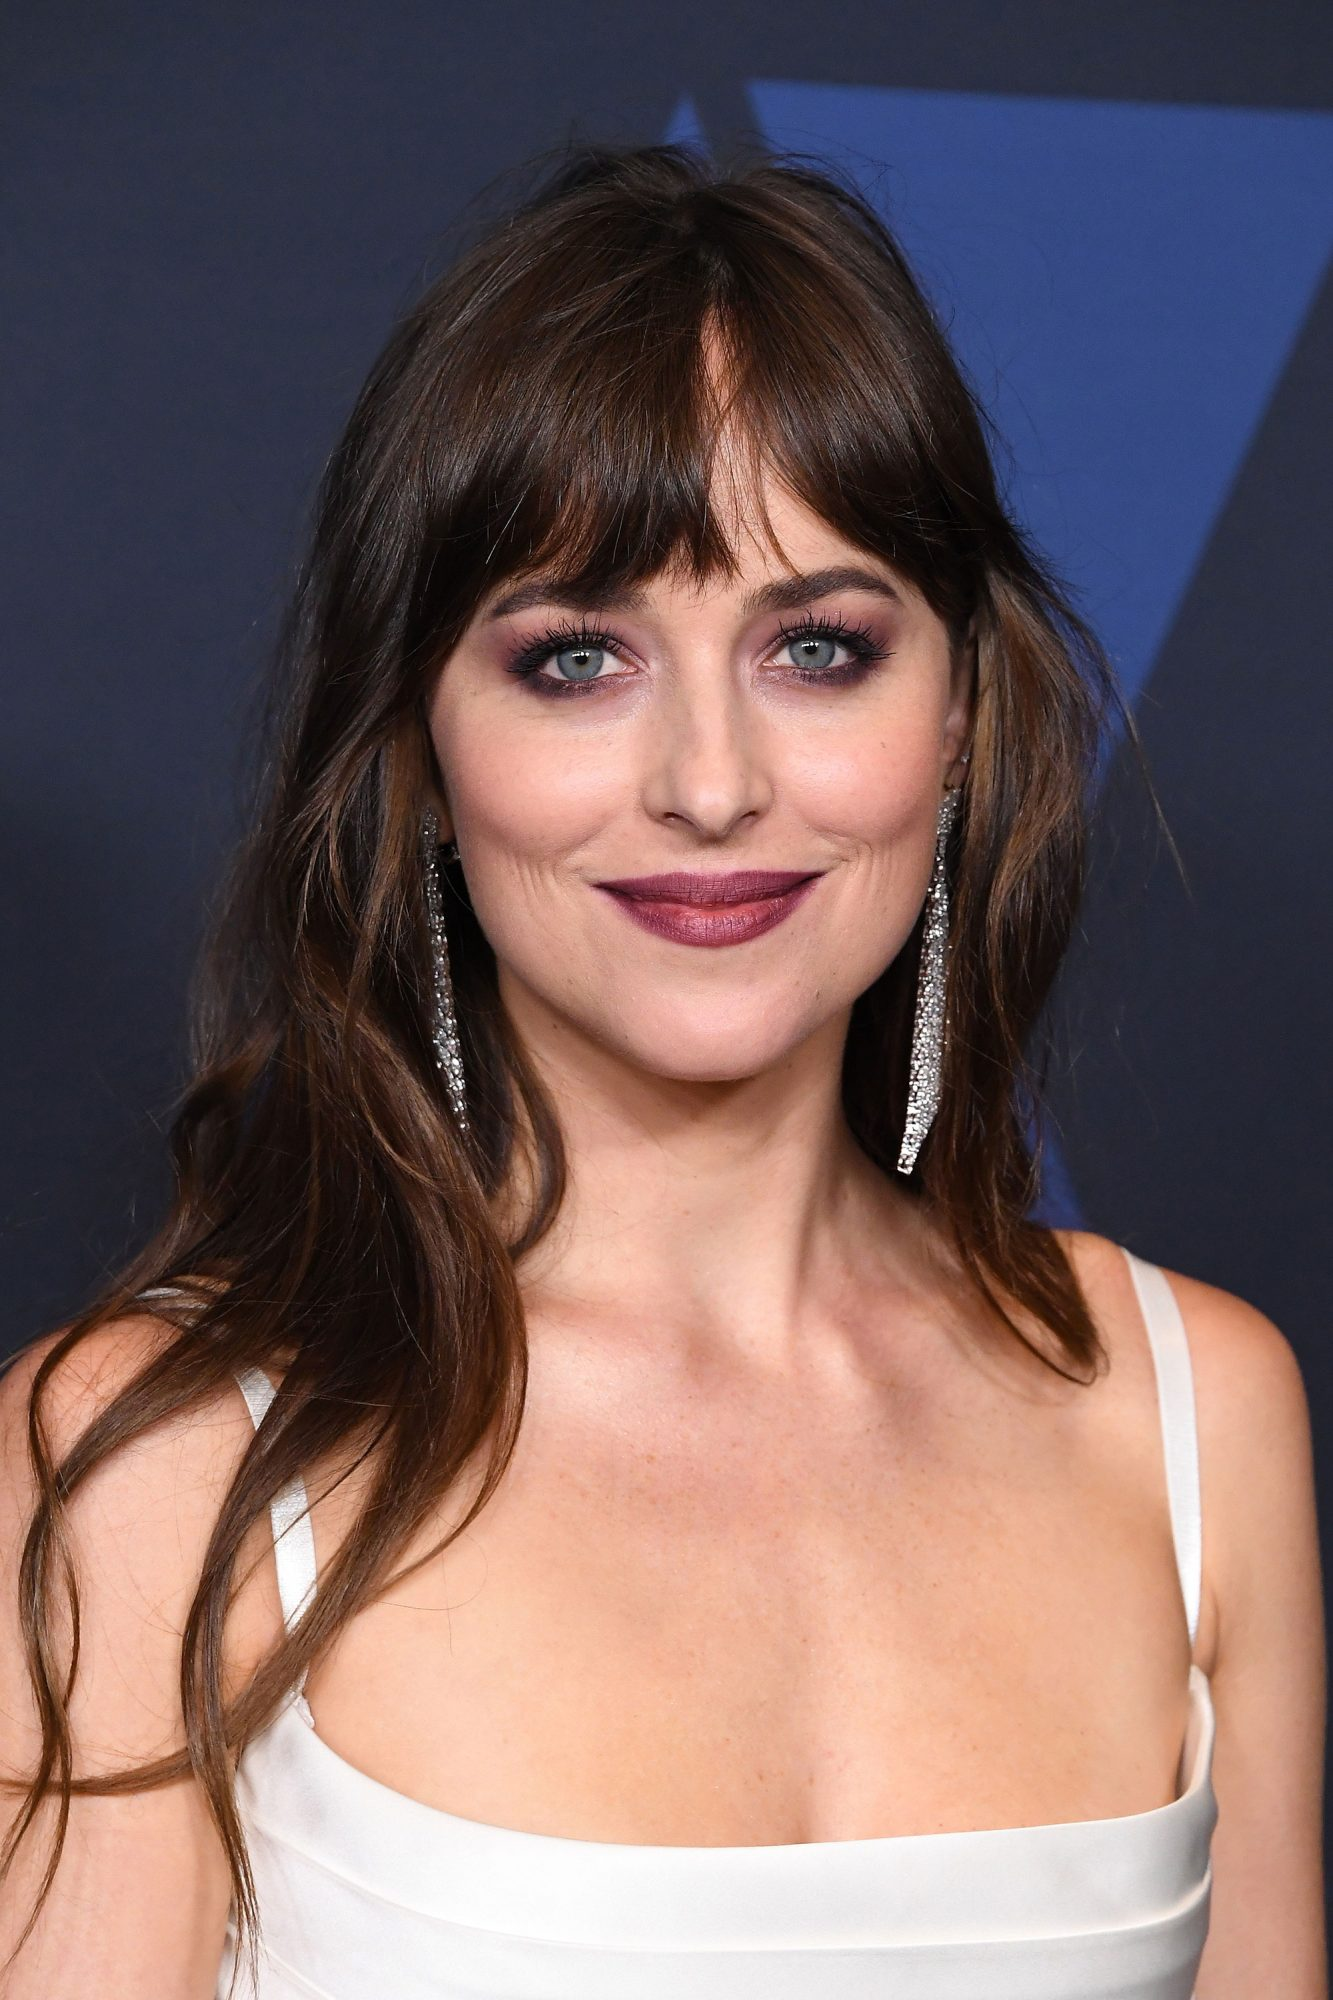 How to Grow Out Bangs - Hairstyles for Growing Out Bangs | InStyle